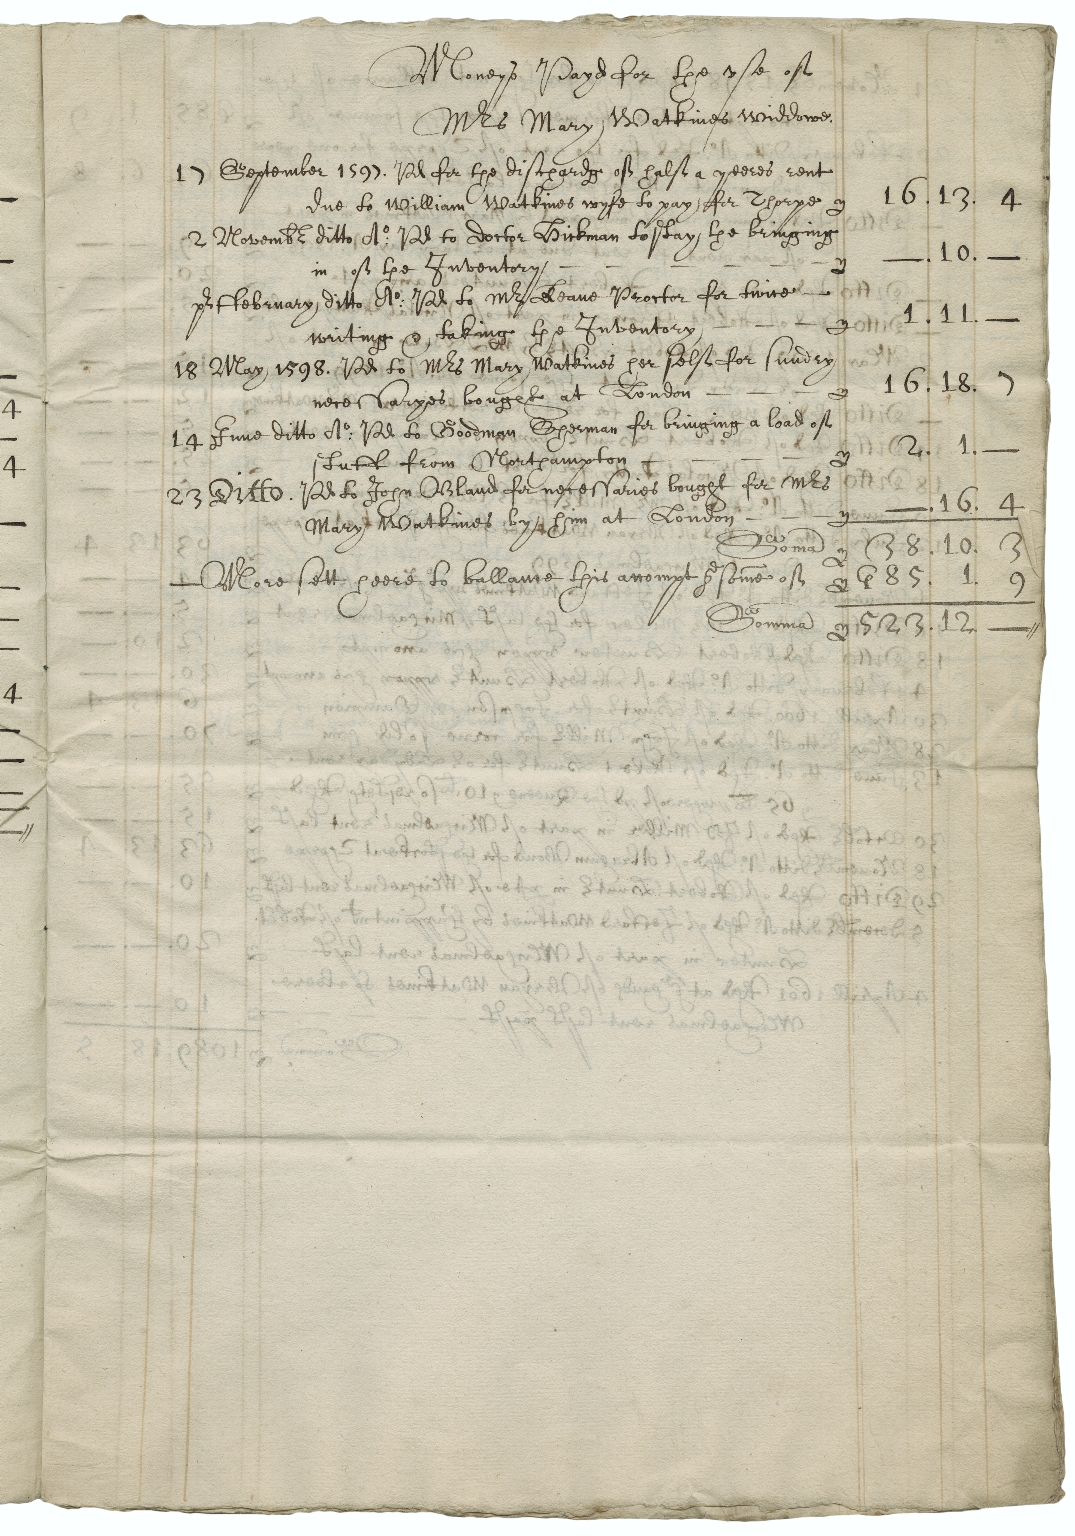 Accounts of money received for Mary Watkins